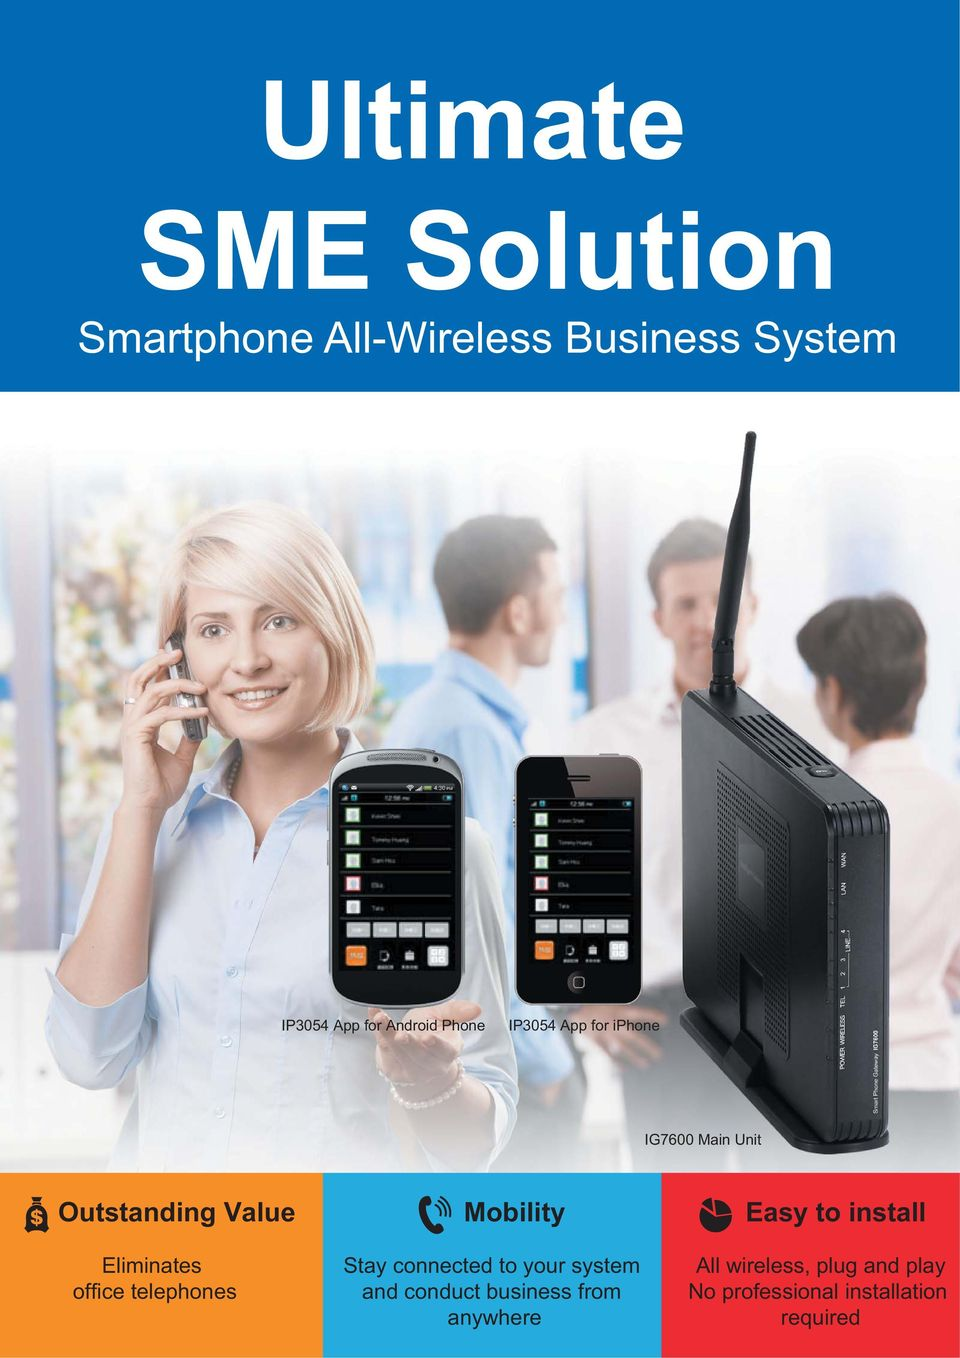 office telephones Mobility Stay connected to your system and conduct business from